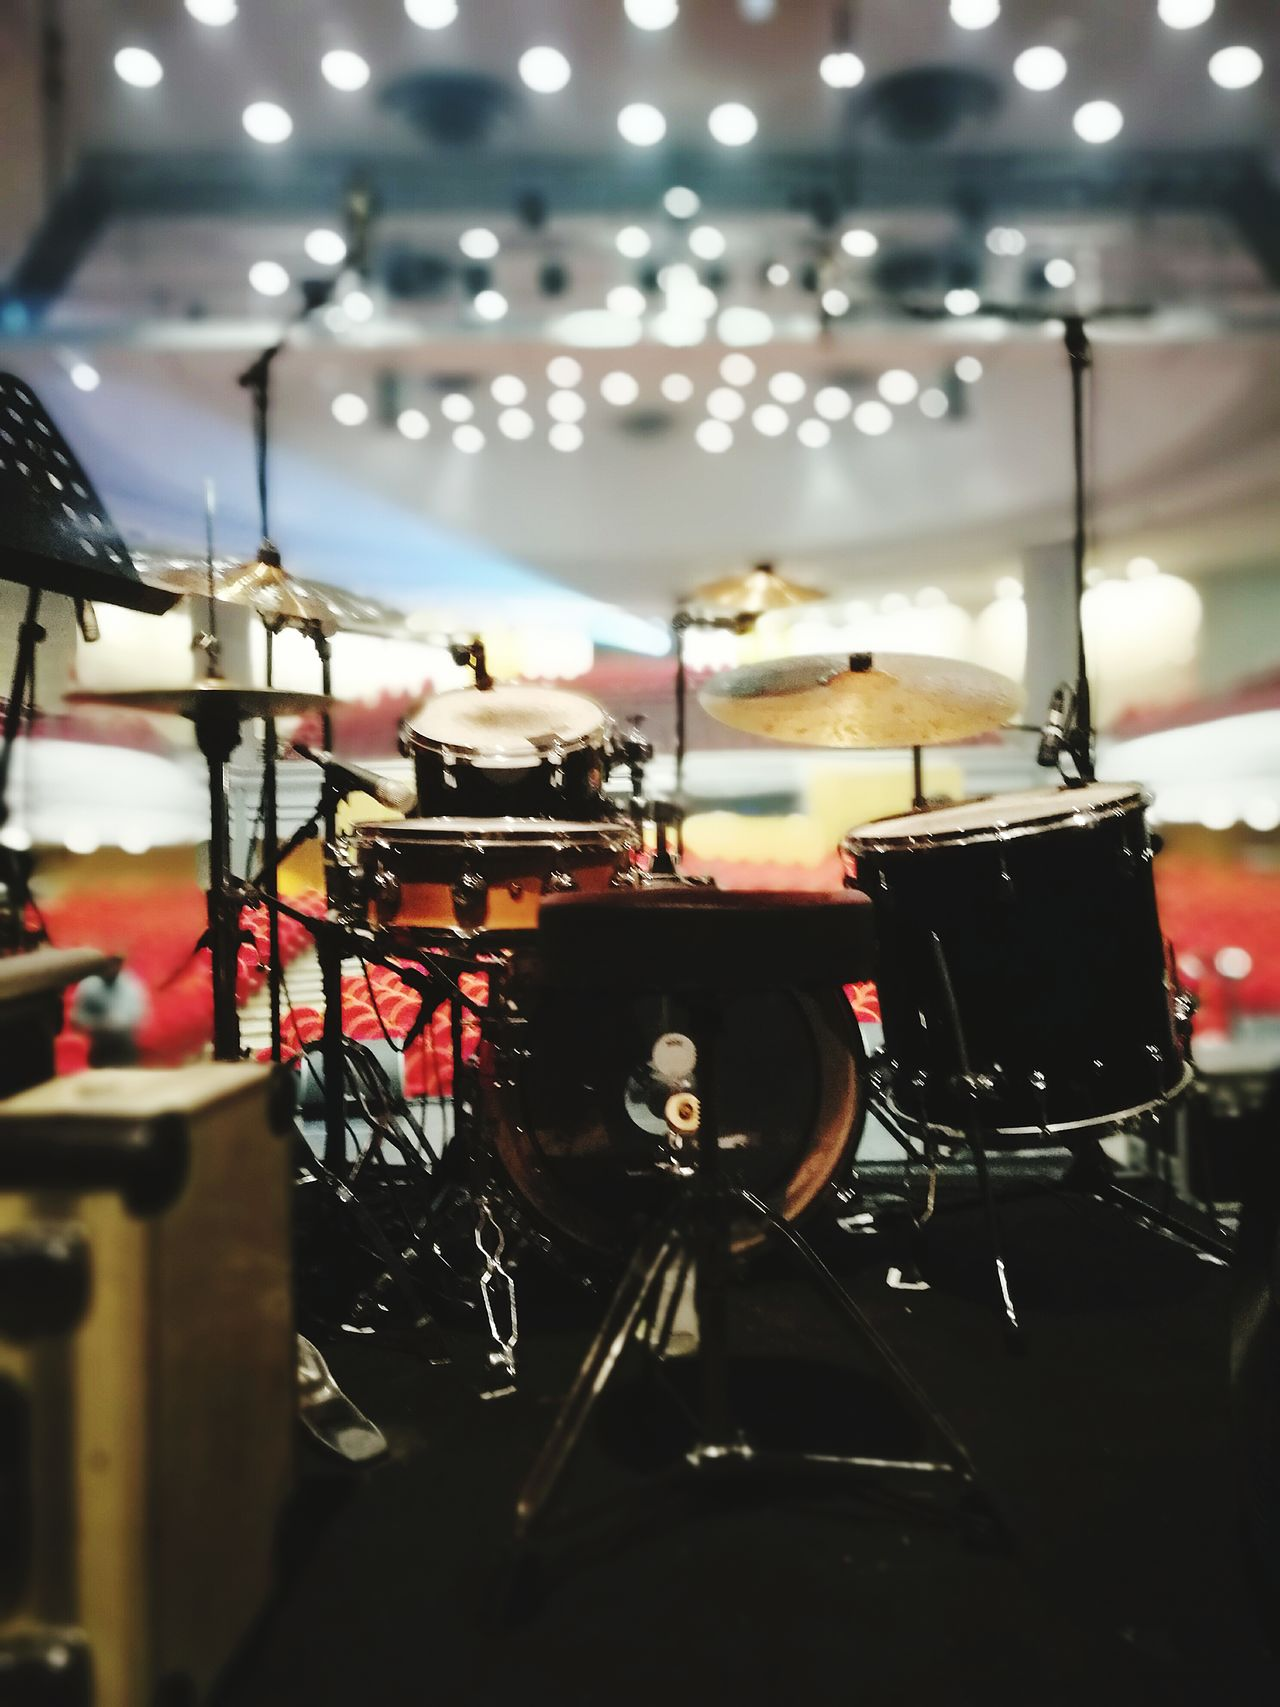 Concert Drum Ambiance Musical Instrument Indoors  Stage - Performance Space No People Drum Kit Batterie Salle De Concert Stage Lighting Eyemphotography Entre Ombre Et Lumiere Silhouette Low Angle View Eyeme Photo